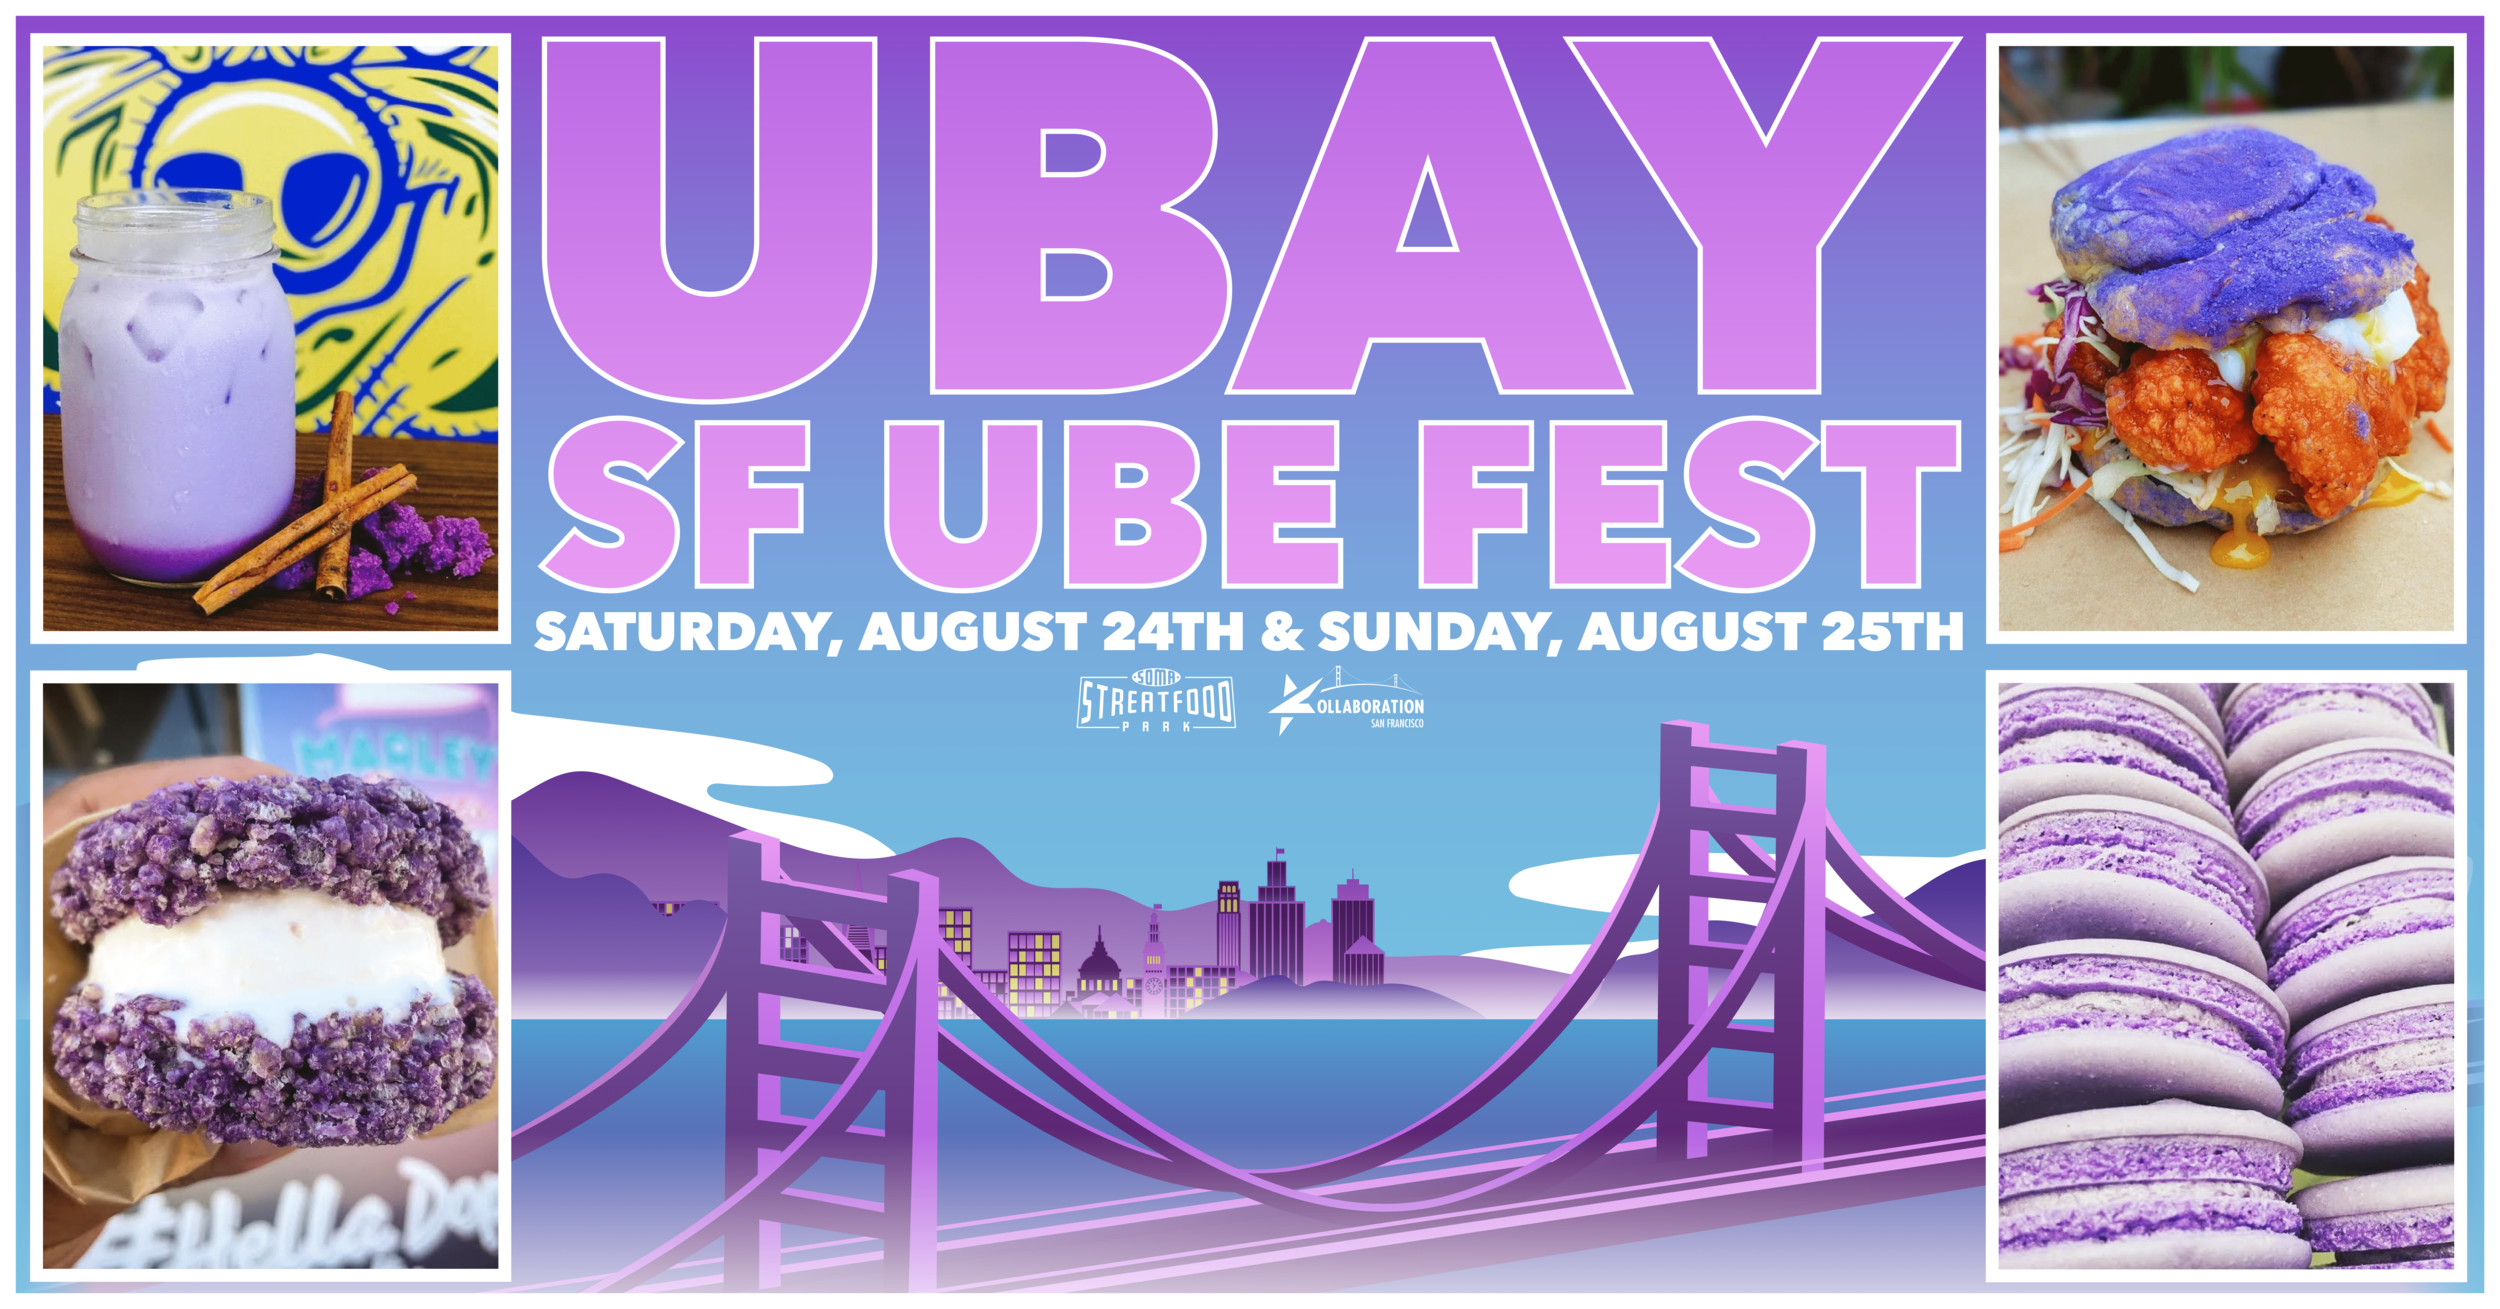 ubefest2019-fb-event.png